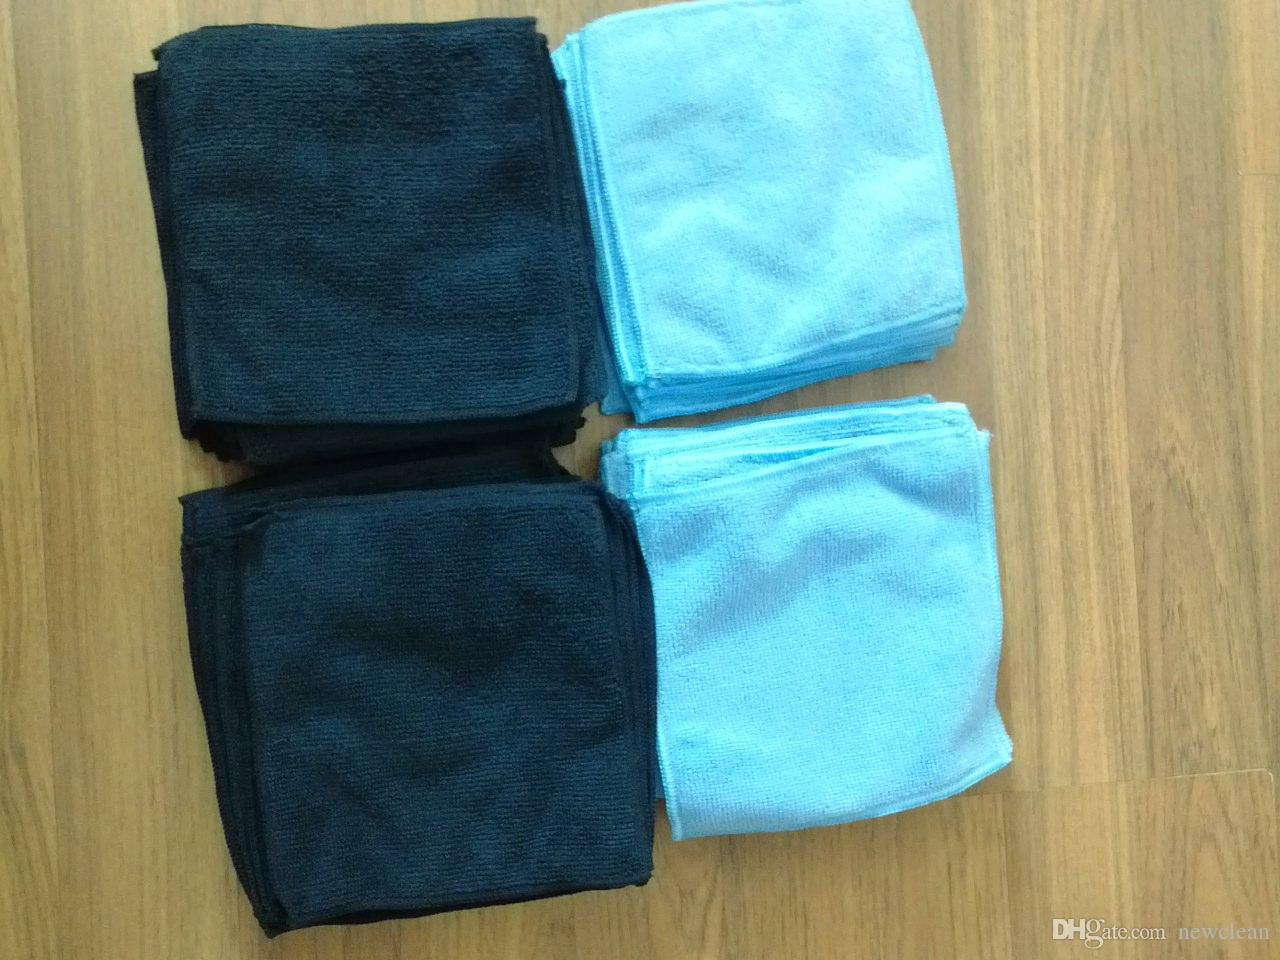 15x15cm Microfiber Cleaning Towel Microfibre Glass Cleaner Rags Car Polishing Scrubing Detailing Cloth